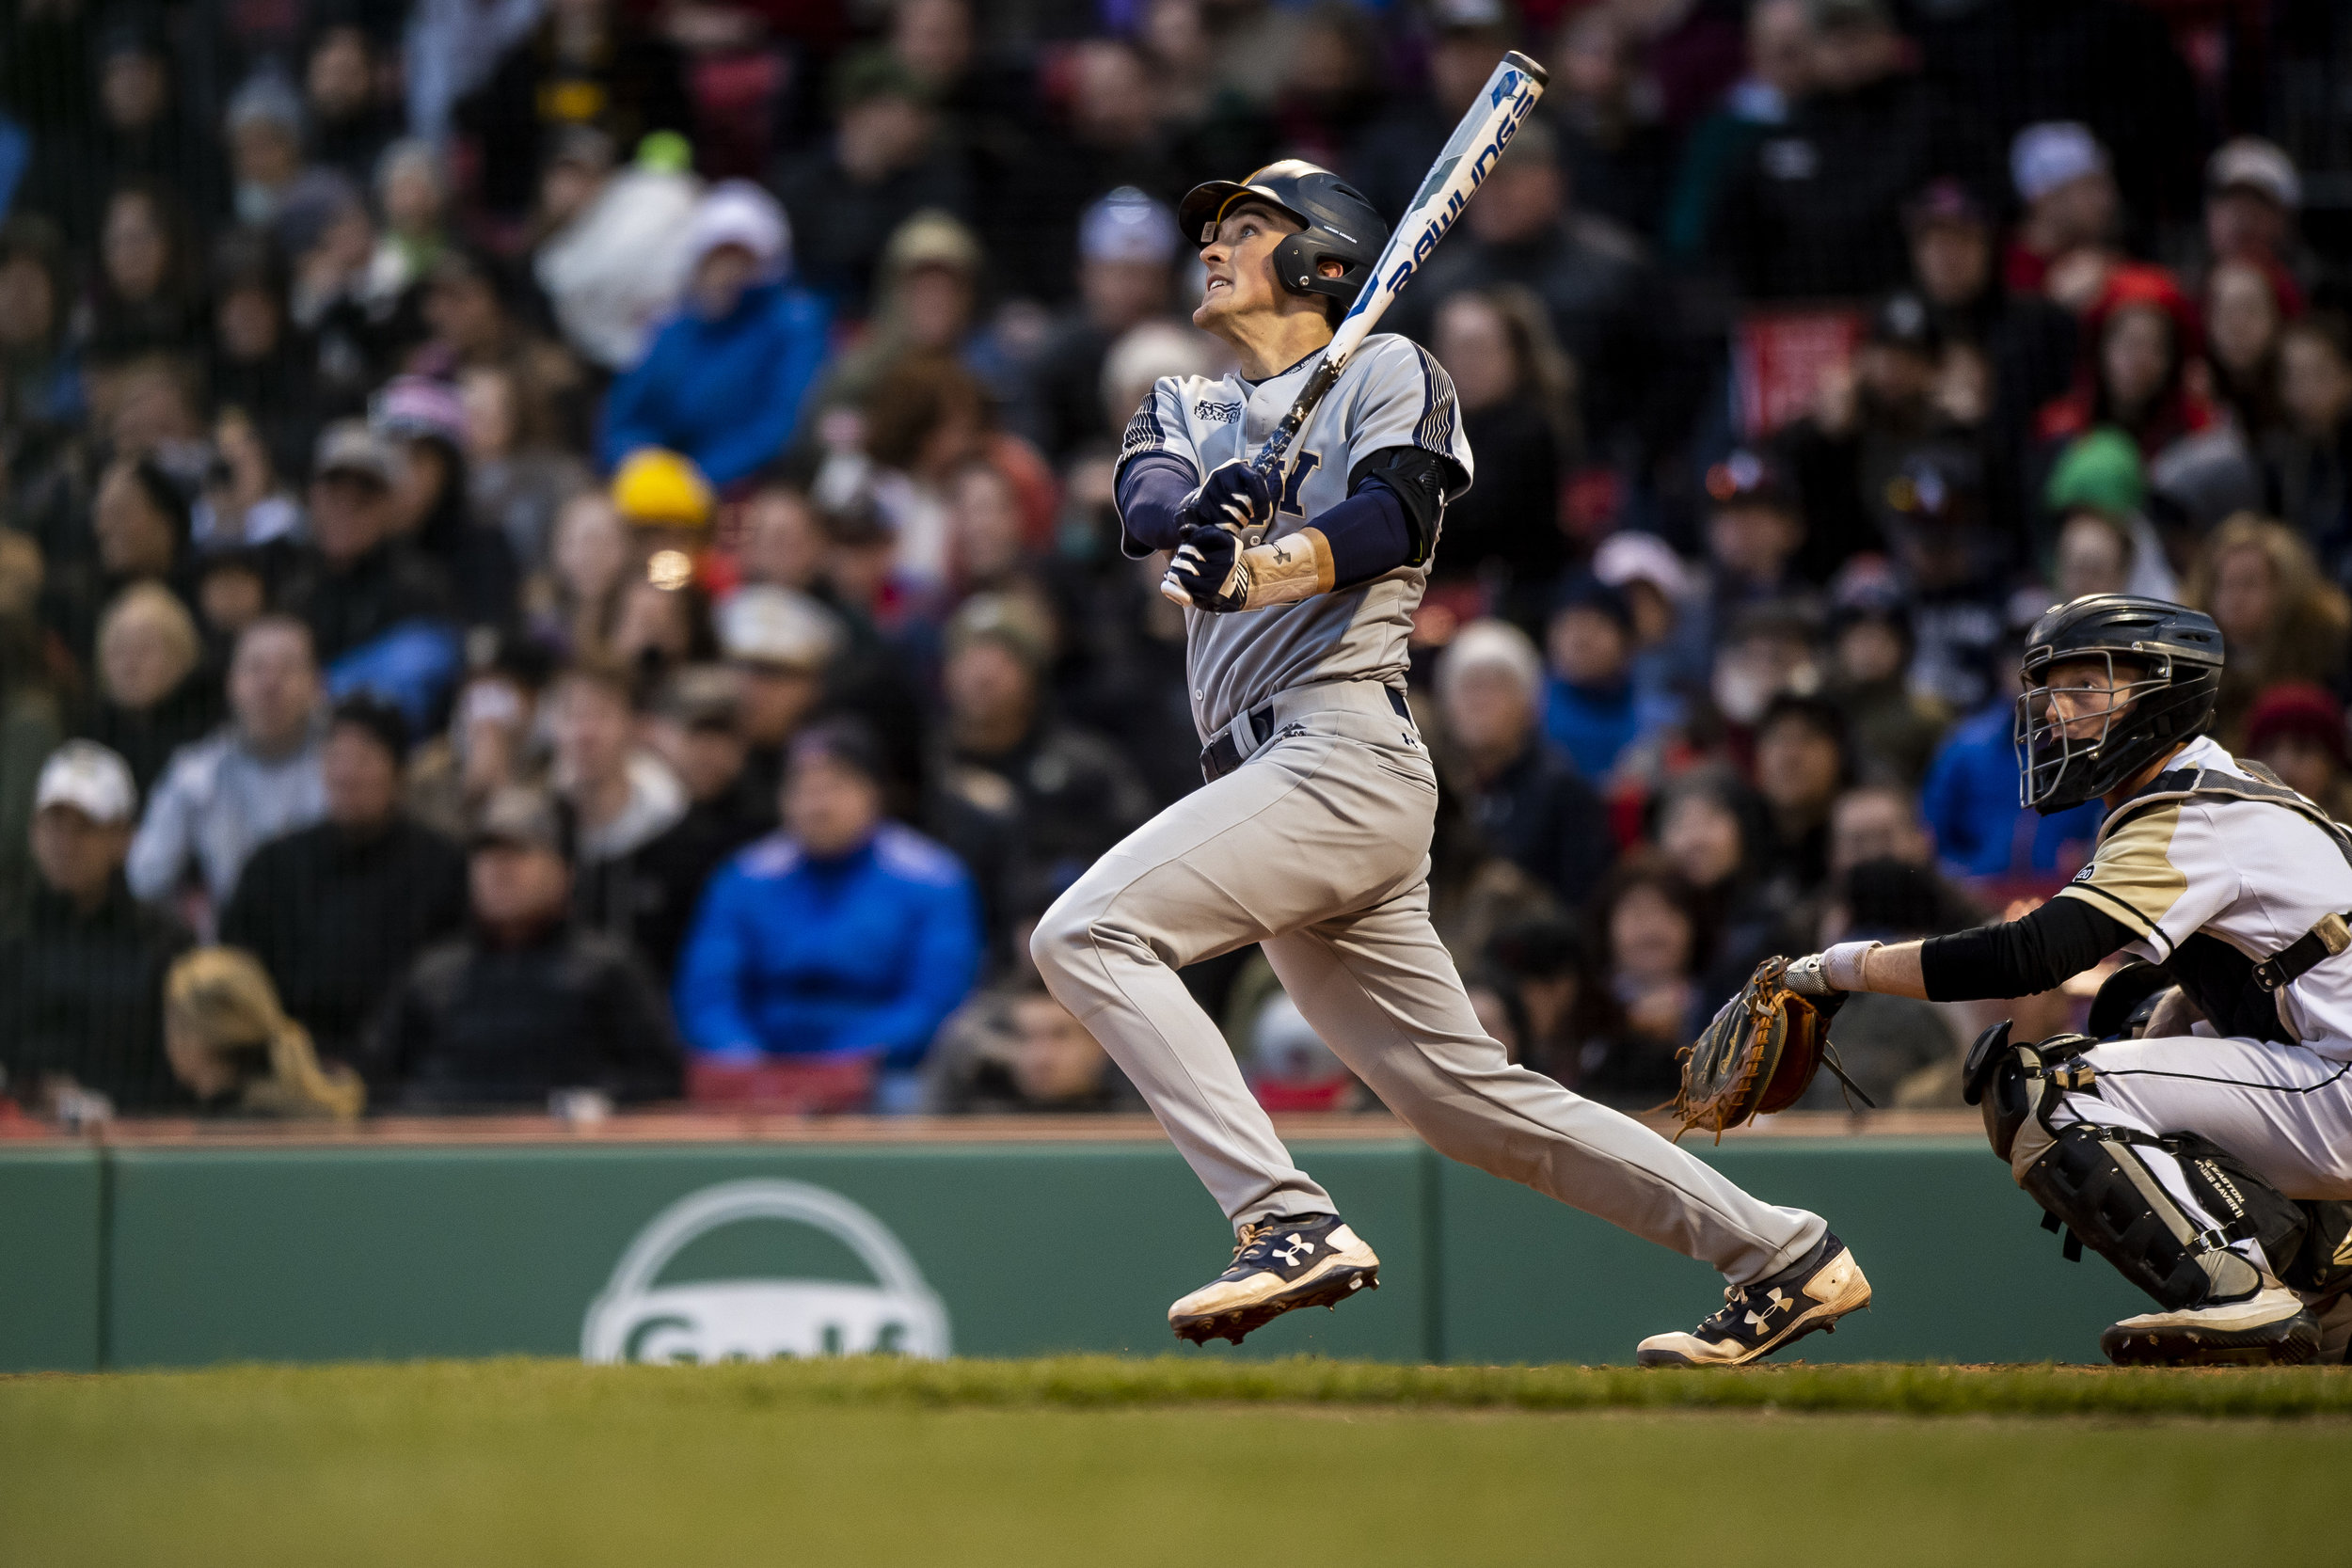 April 20, 2018, Boston, MA: A Navy batter swings at a pitch as Army - West Point faces The Naval Academy at Fenway Park in Boston, Massachusetts Friday, April 20, 2018. (Photo by Matthew Thomas/Boston Red Sox)